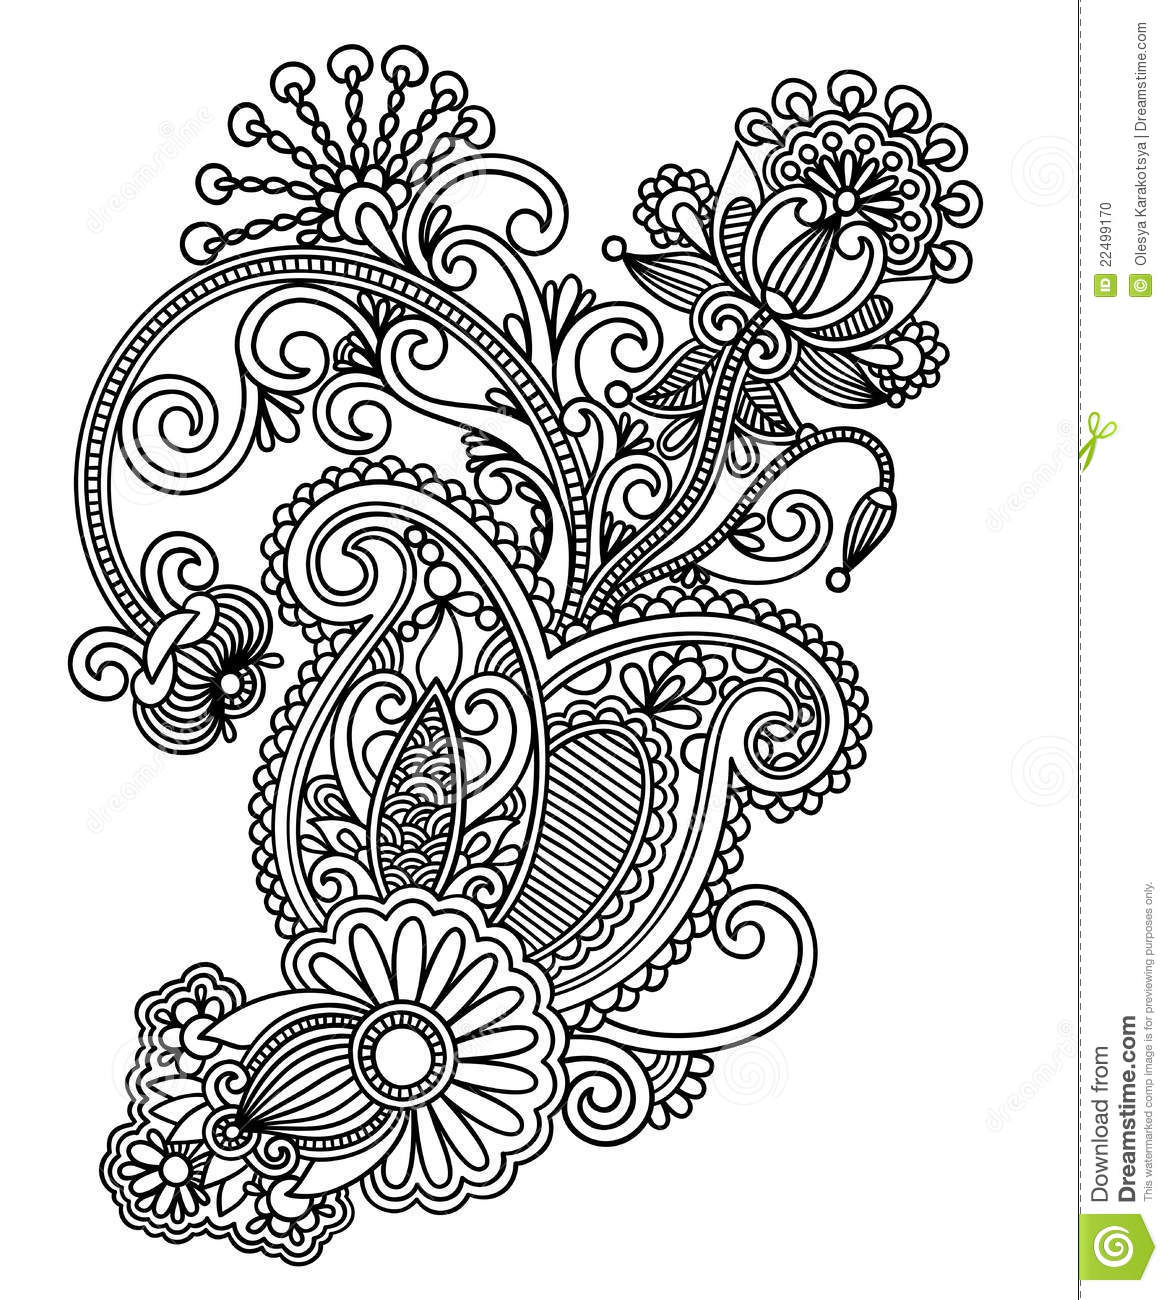 Line In Art And Design : Line art ornate flower design stock vector illustration